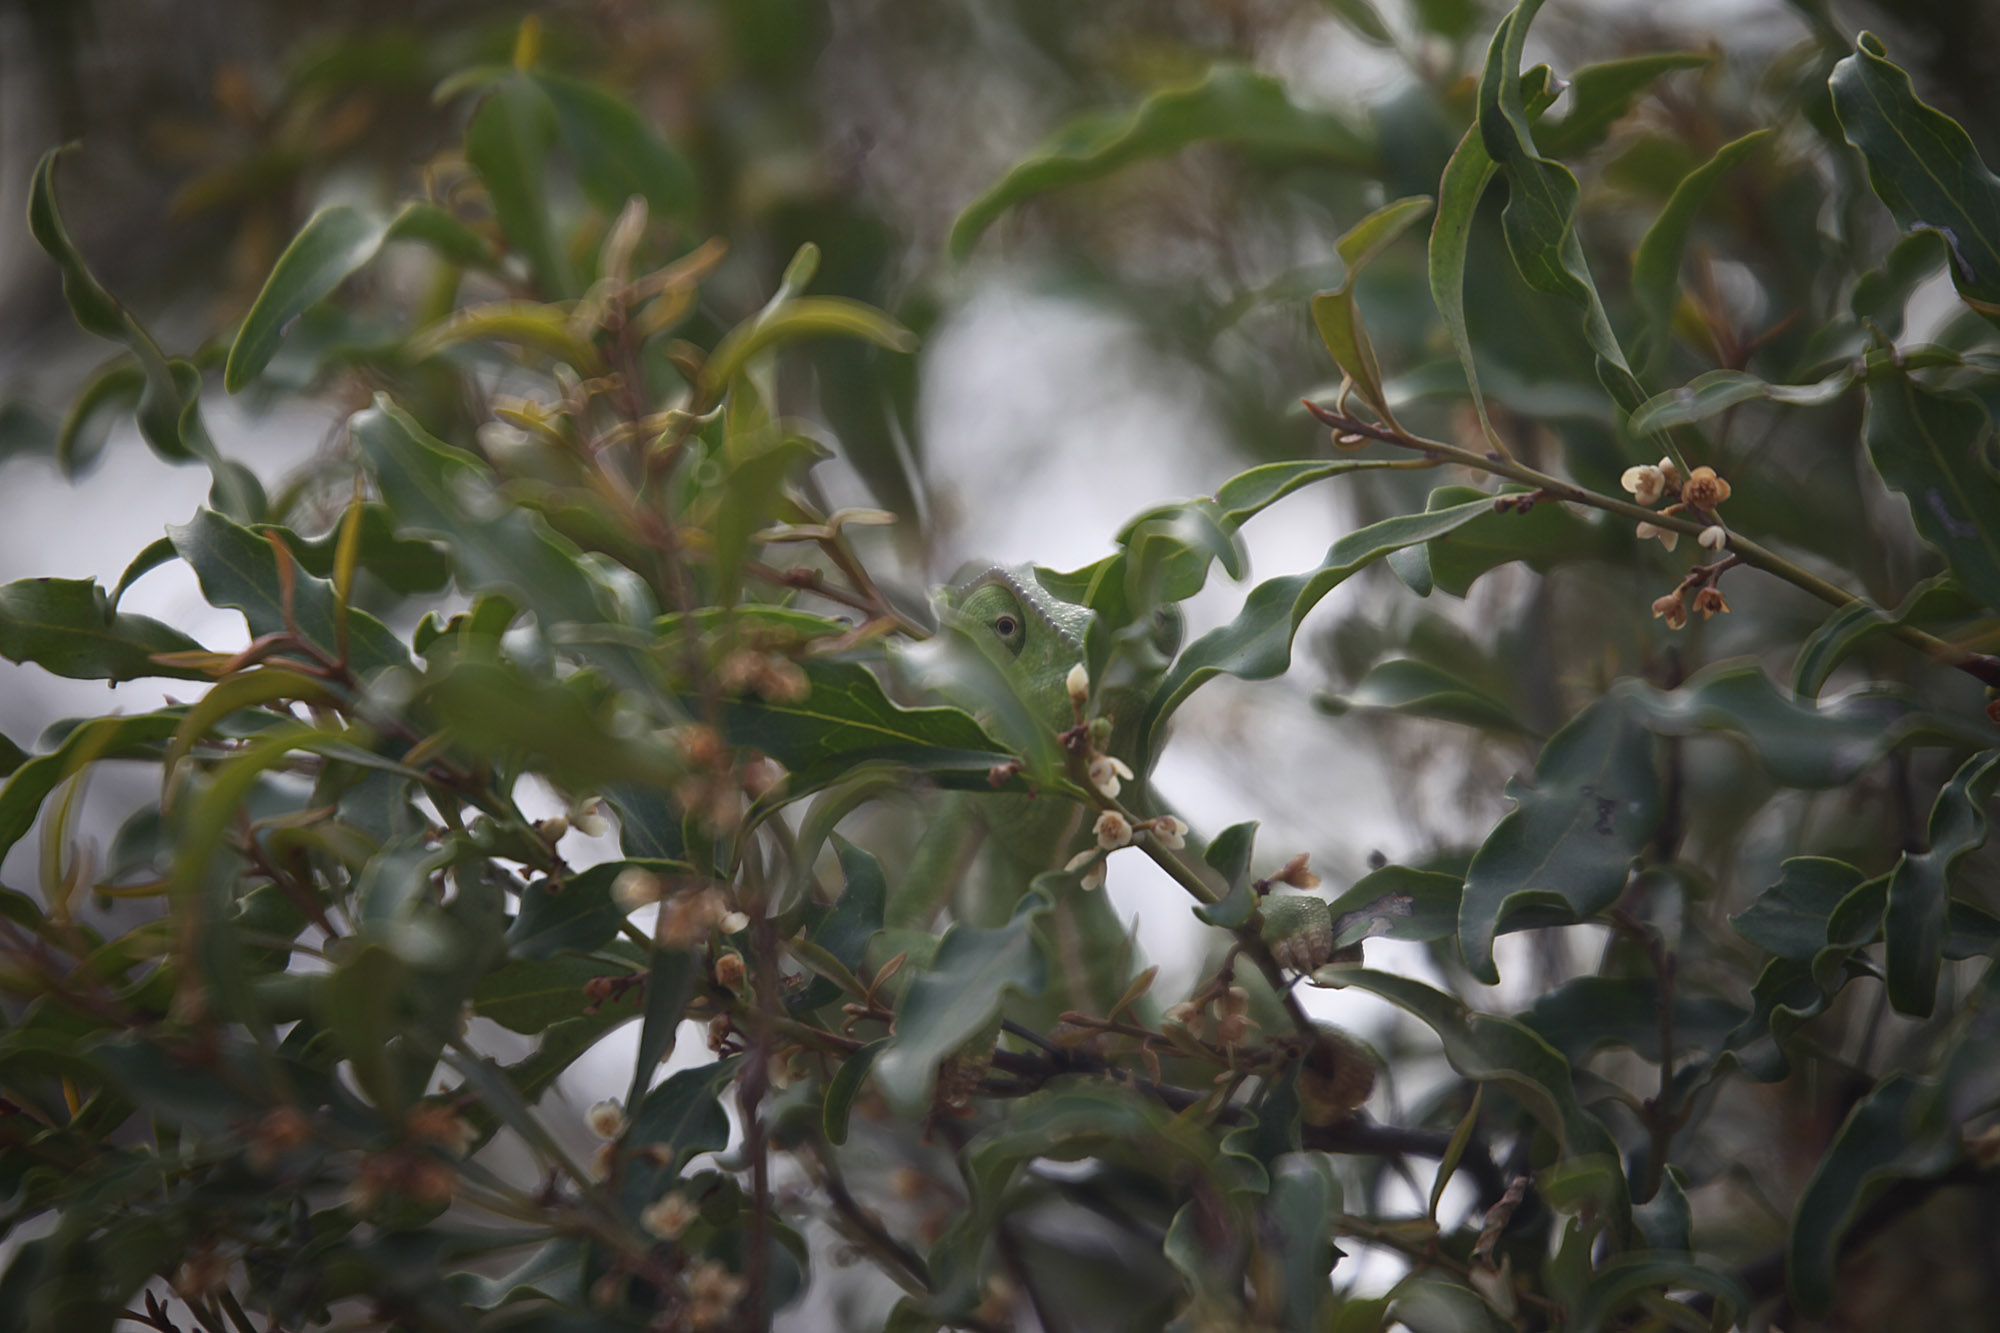 Chameleon .. can you see him?